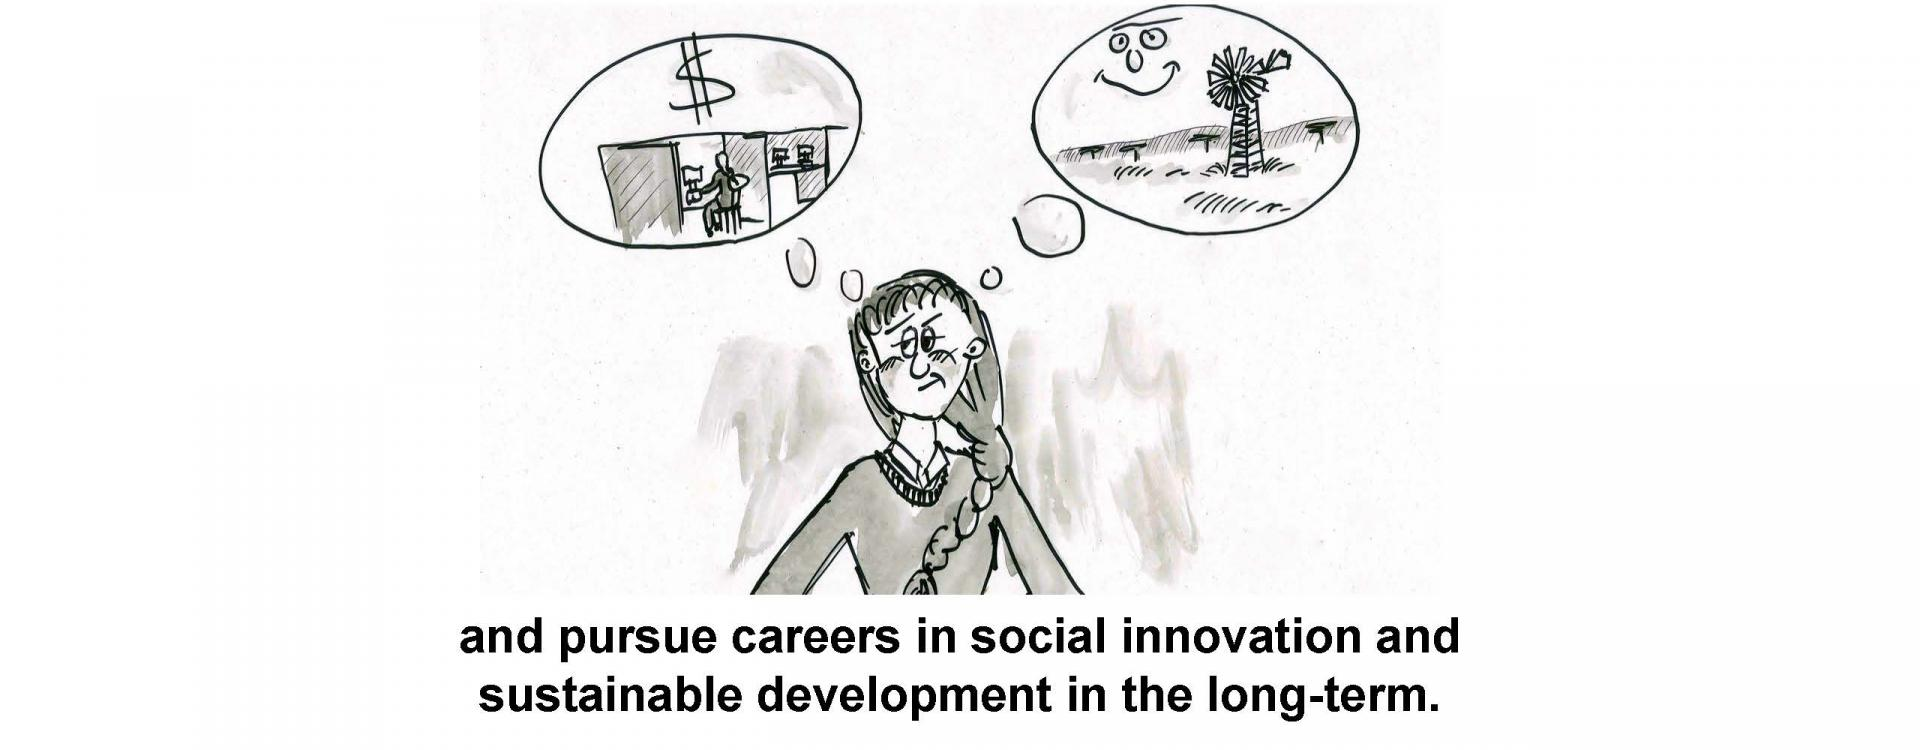 and pursue careers in social innovation and sustainable development in the long-term.